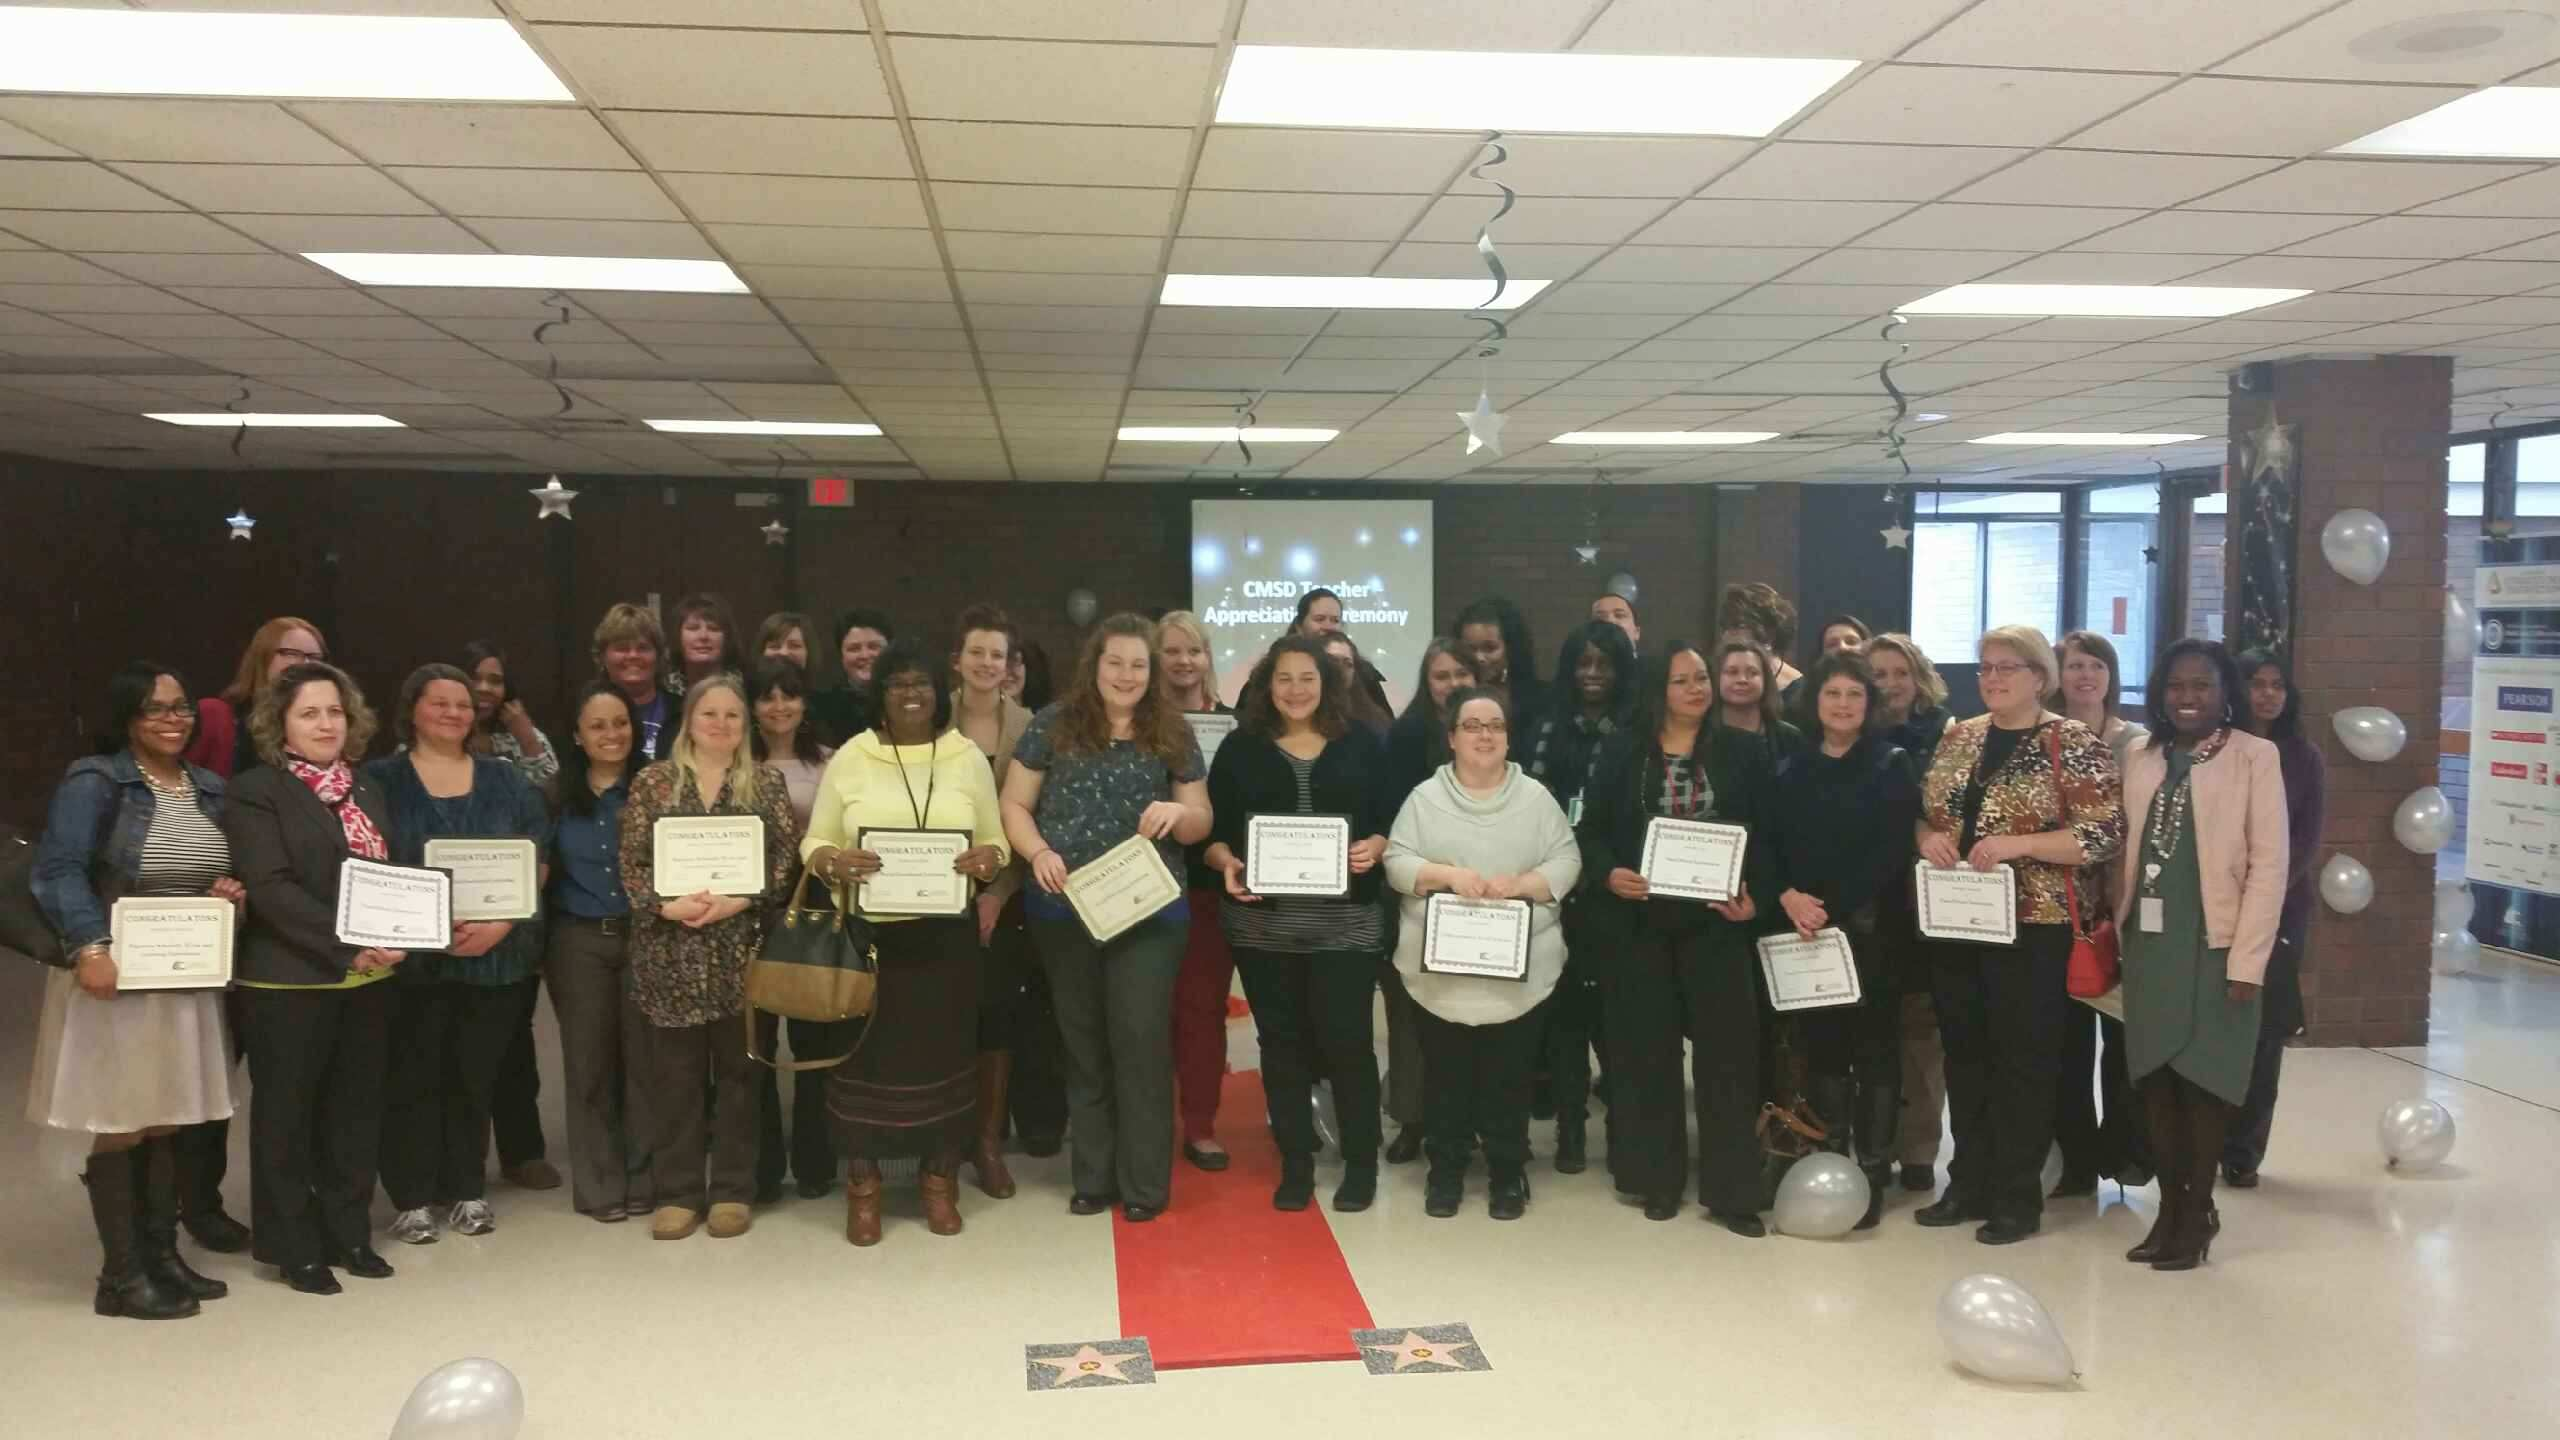 Glenville teacher honored at 2015 Educator Appreciation Day